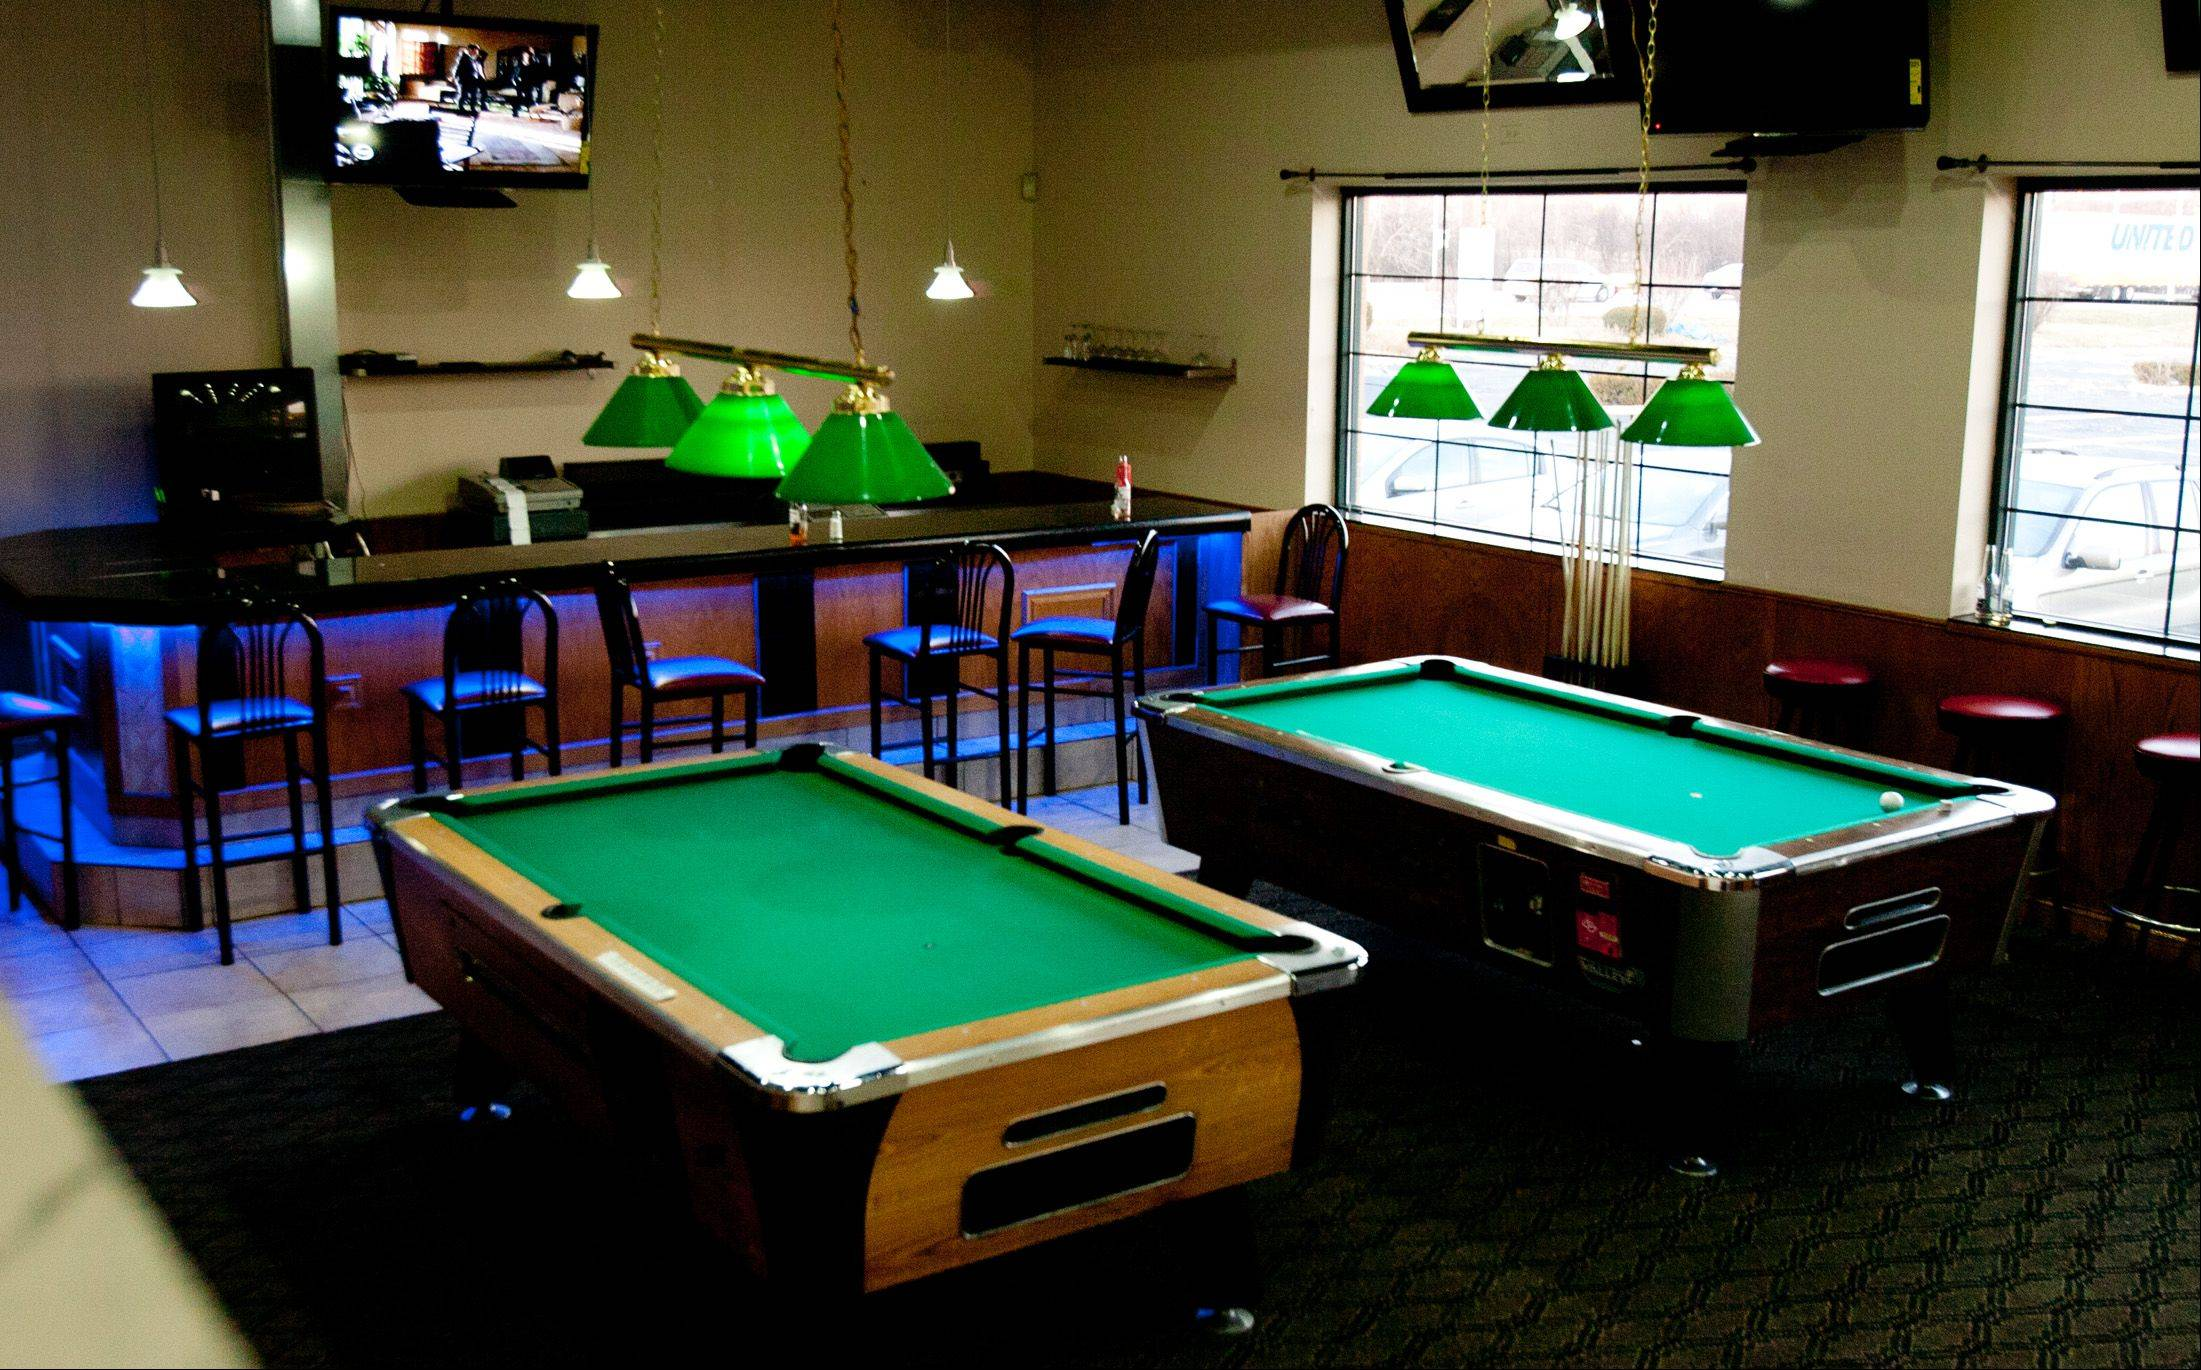 The bar Playoffs reopened as Club Shotz in September.